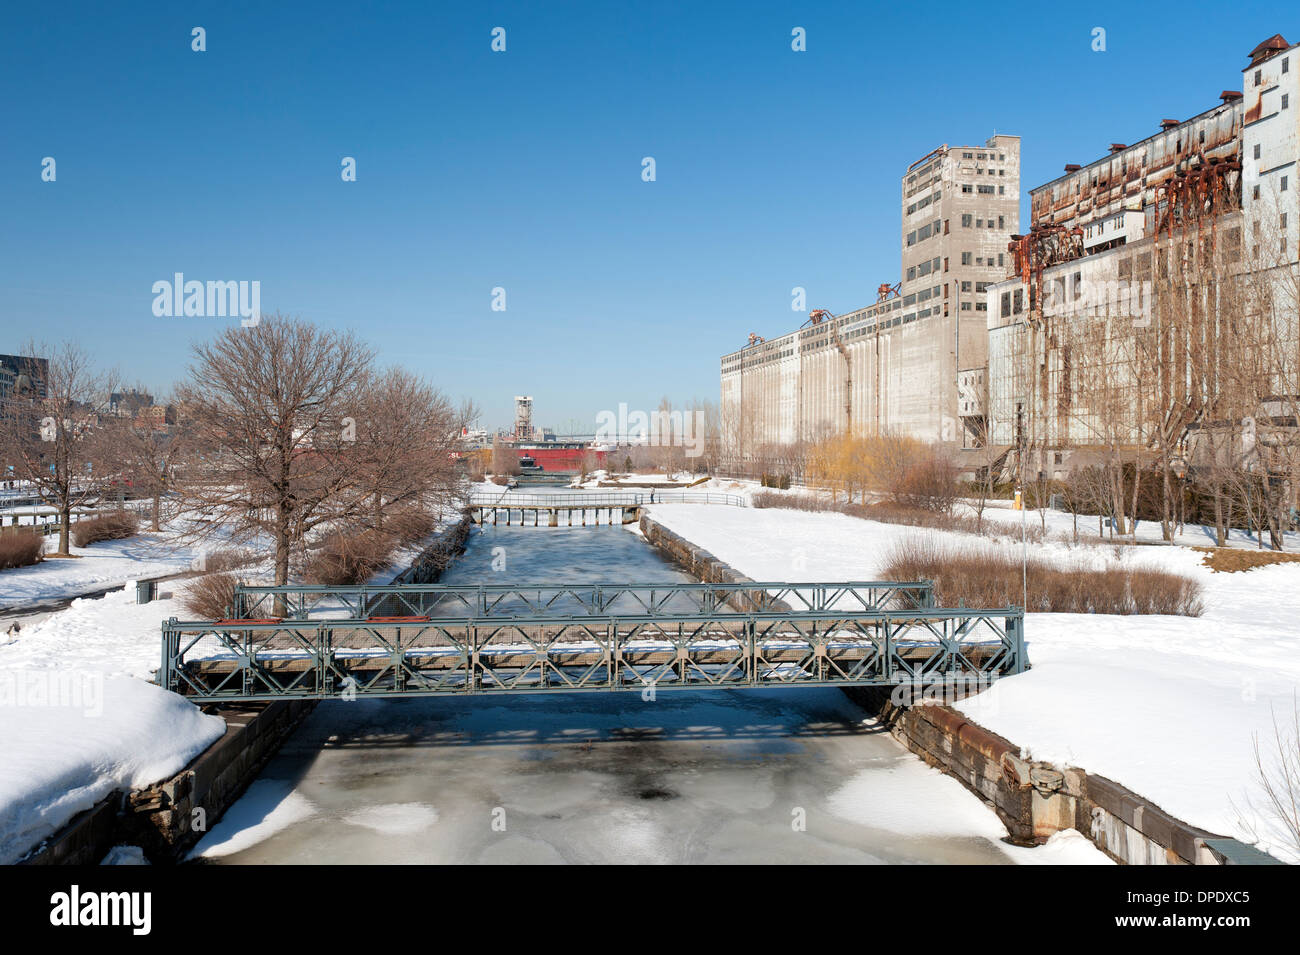 Lachine canal montreal province of quebec canada stock for Domon lachine qc